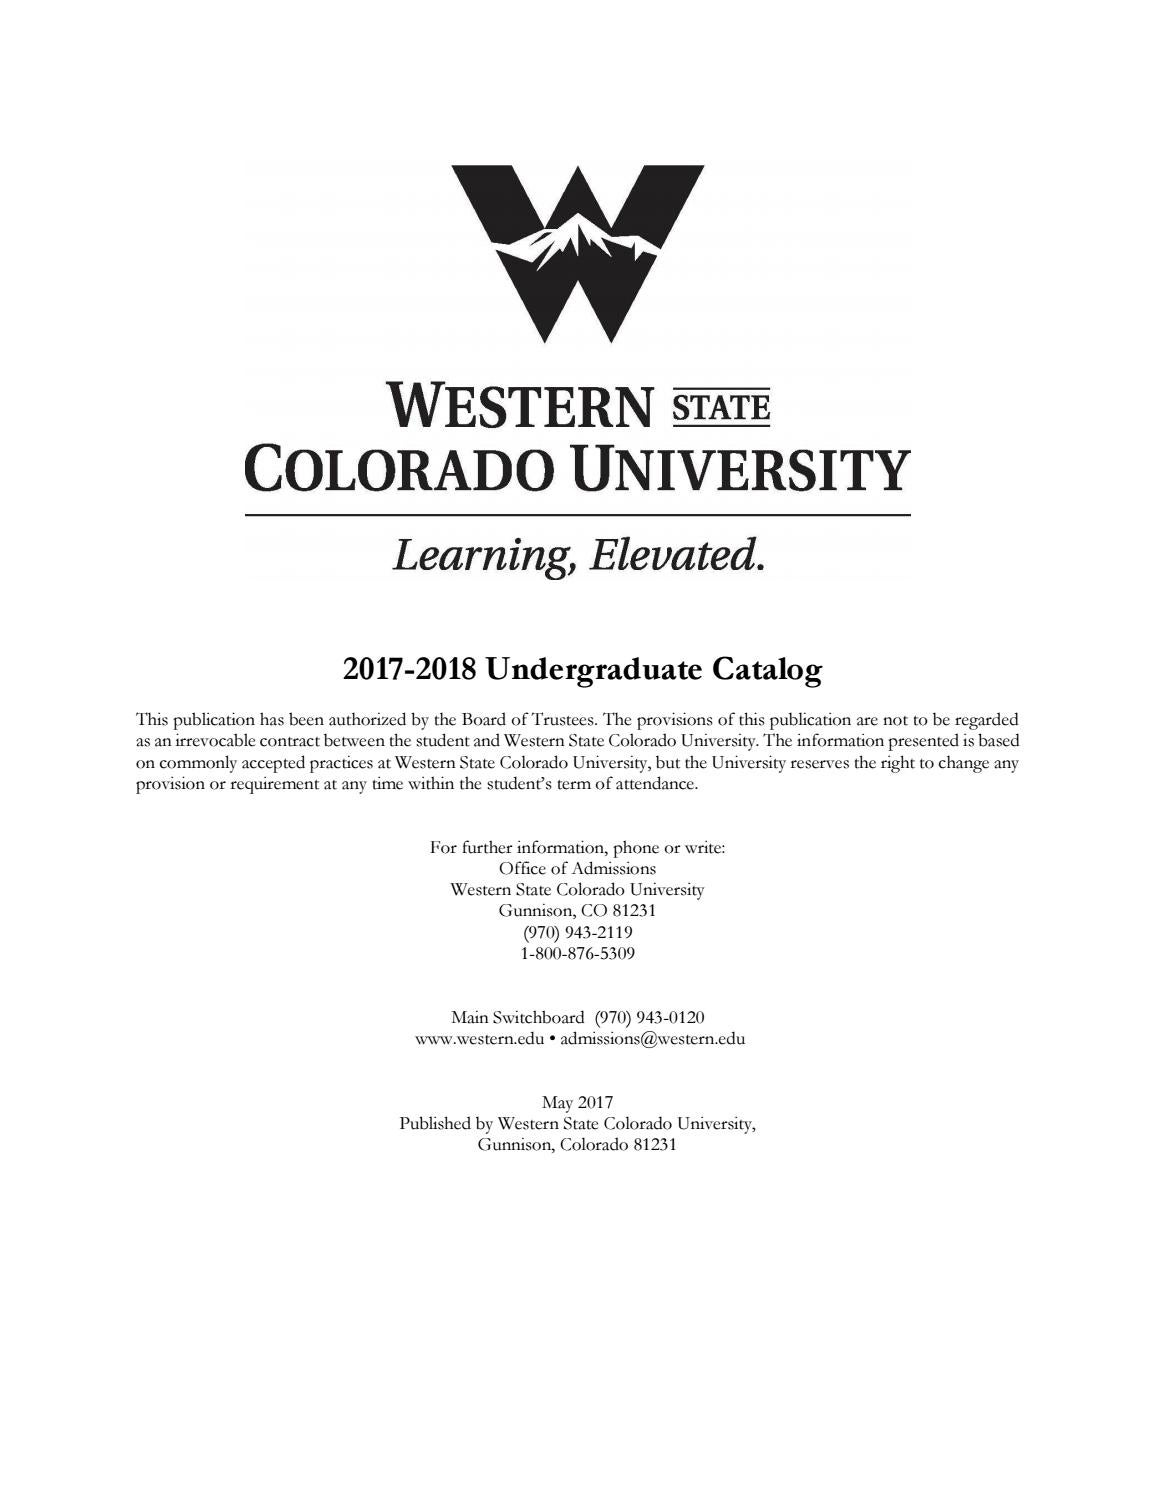 Western Undergraduate 2017-2018 Course Catalog by Western Colorado